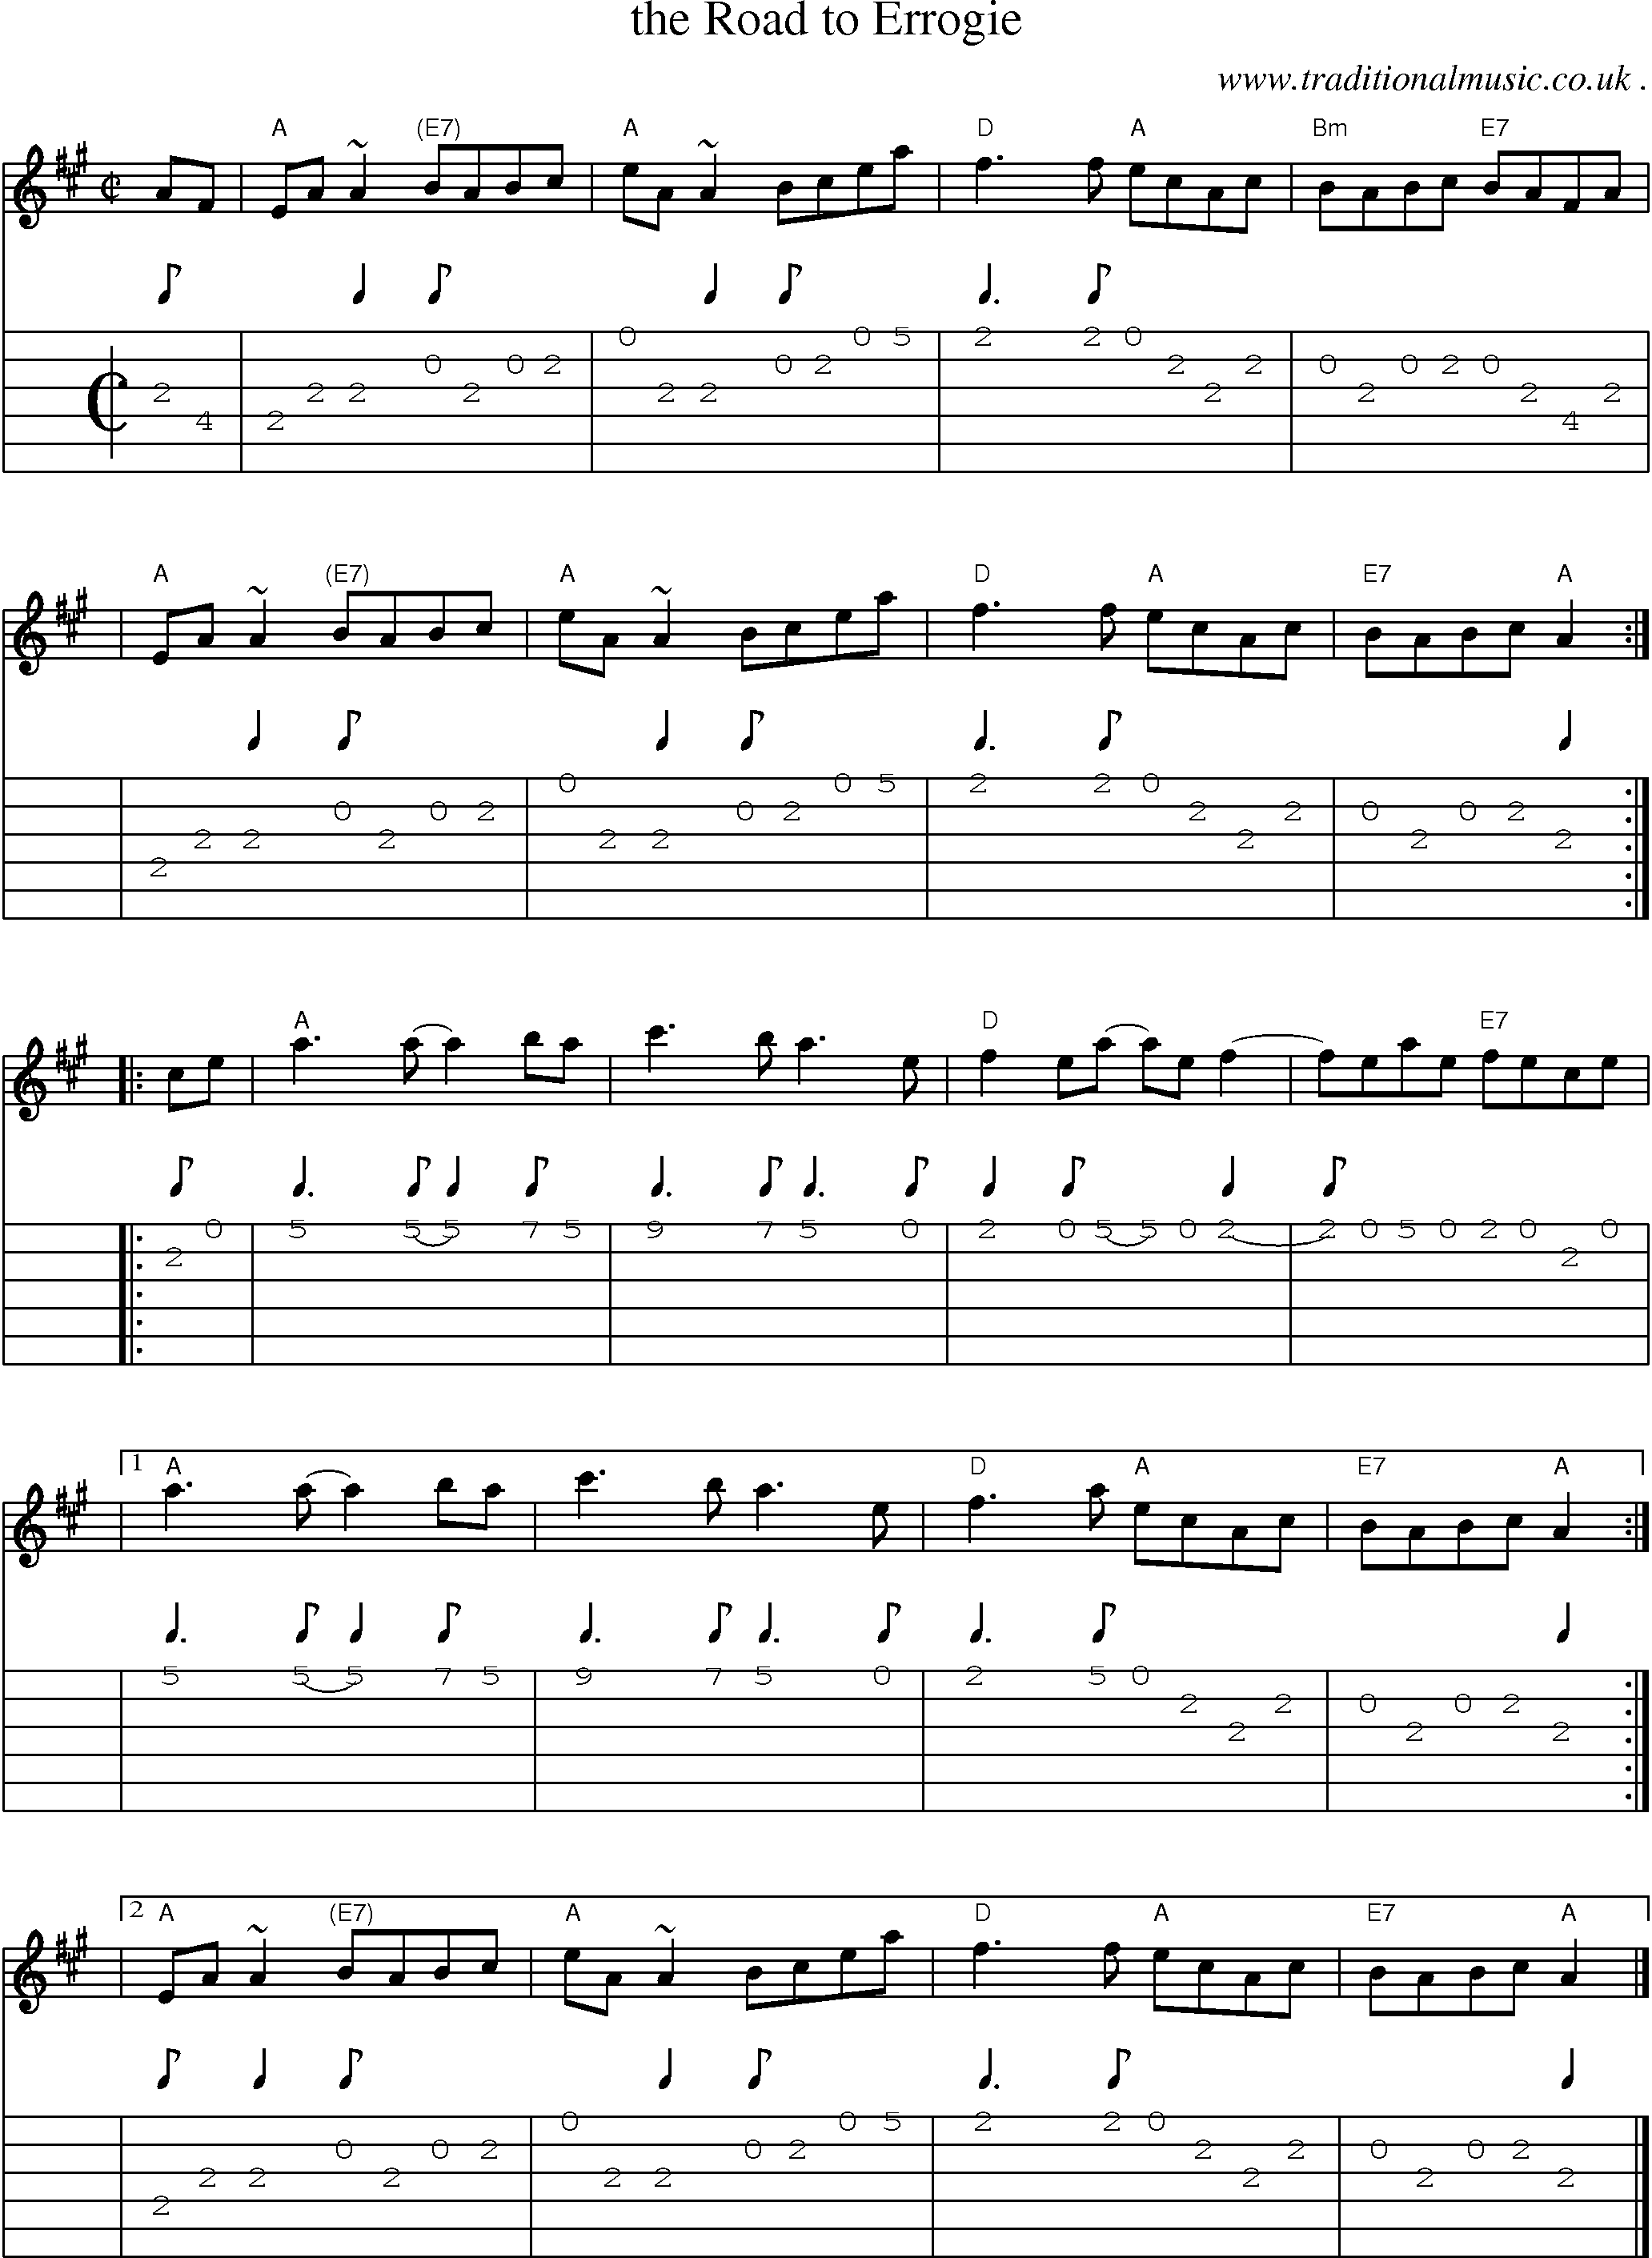 Sheet Music Score Chords And Guitar Tabs For The Road To Errogie